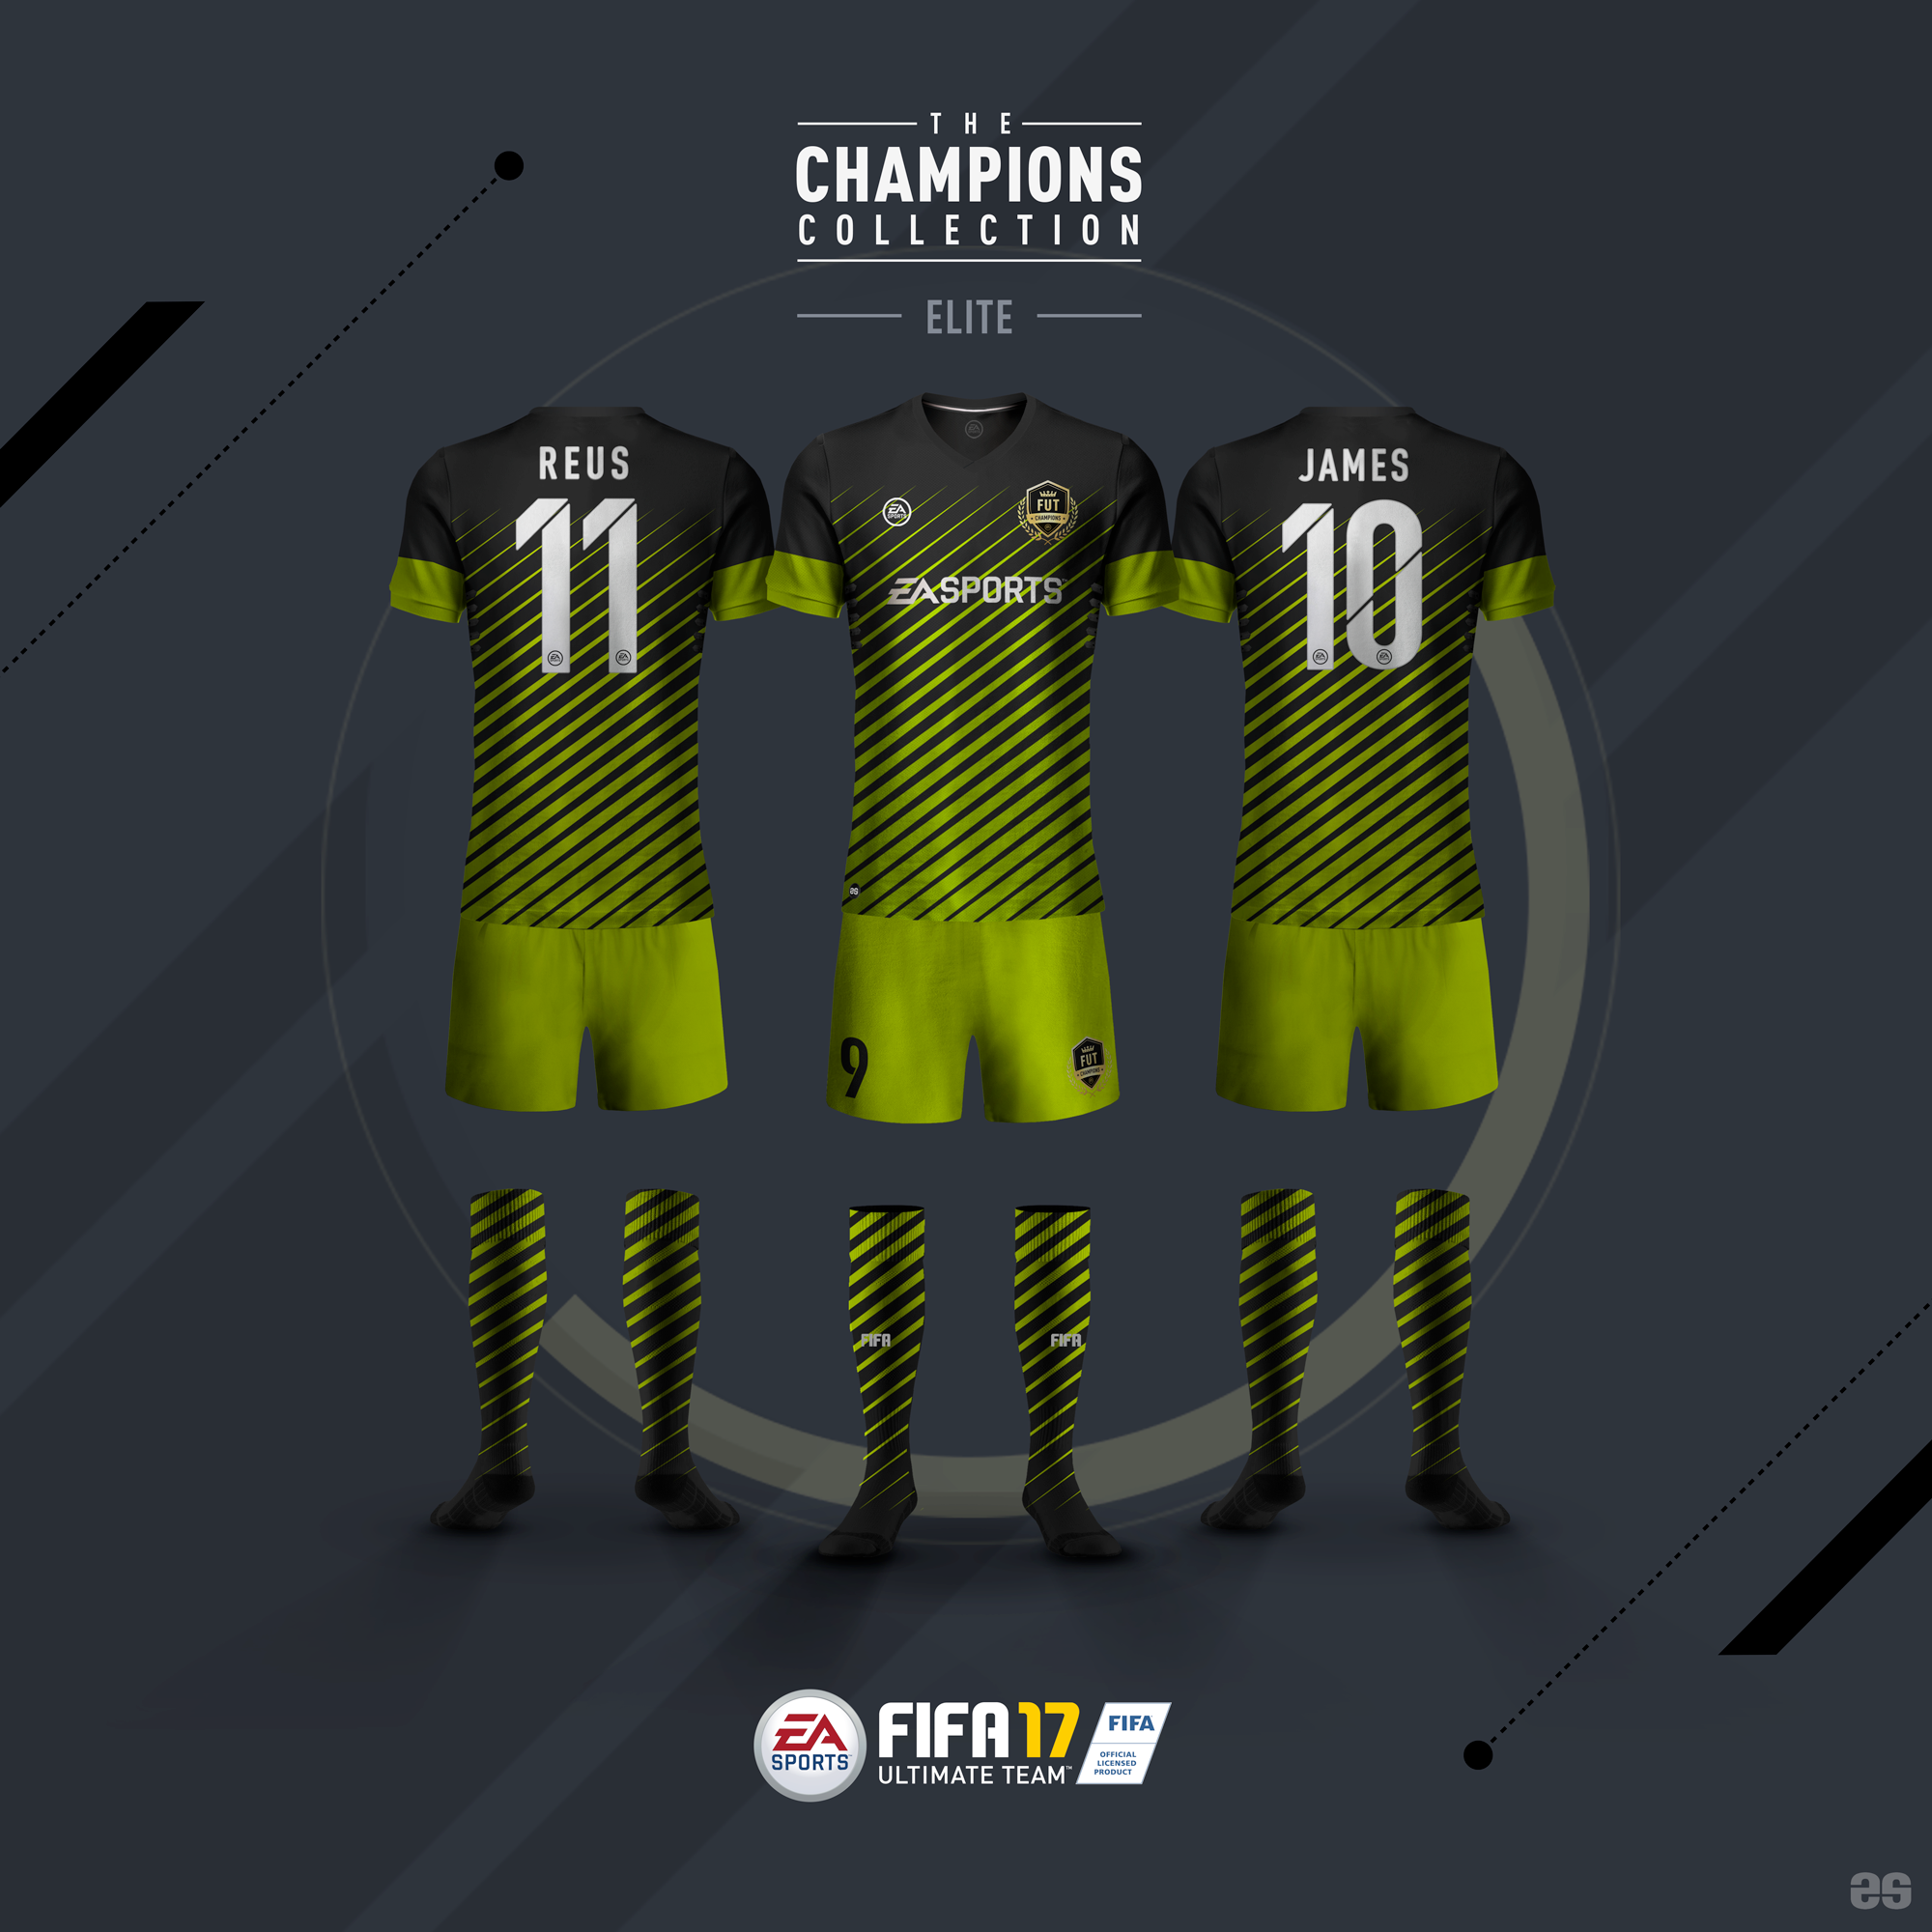 THE-CHAMPIONS-COLLECTION-B